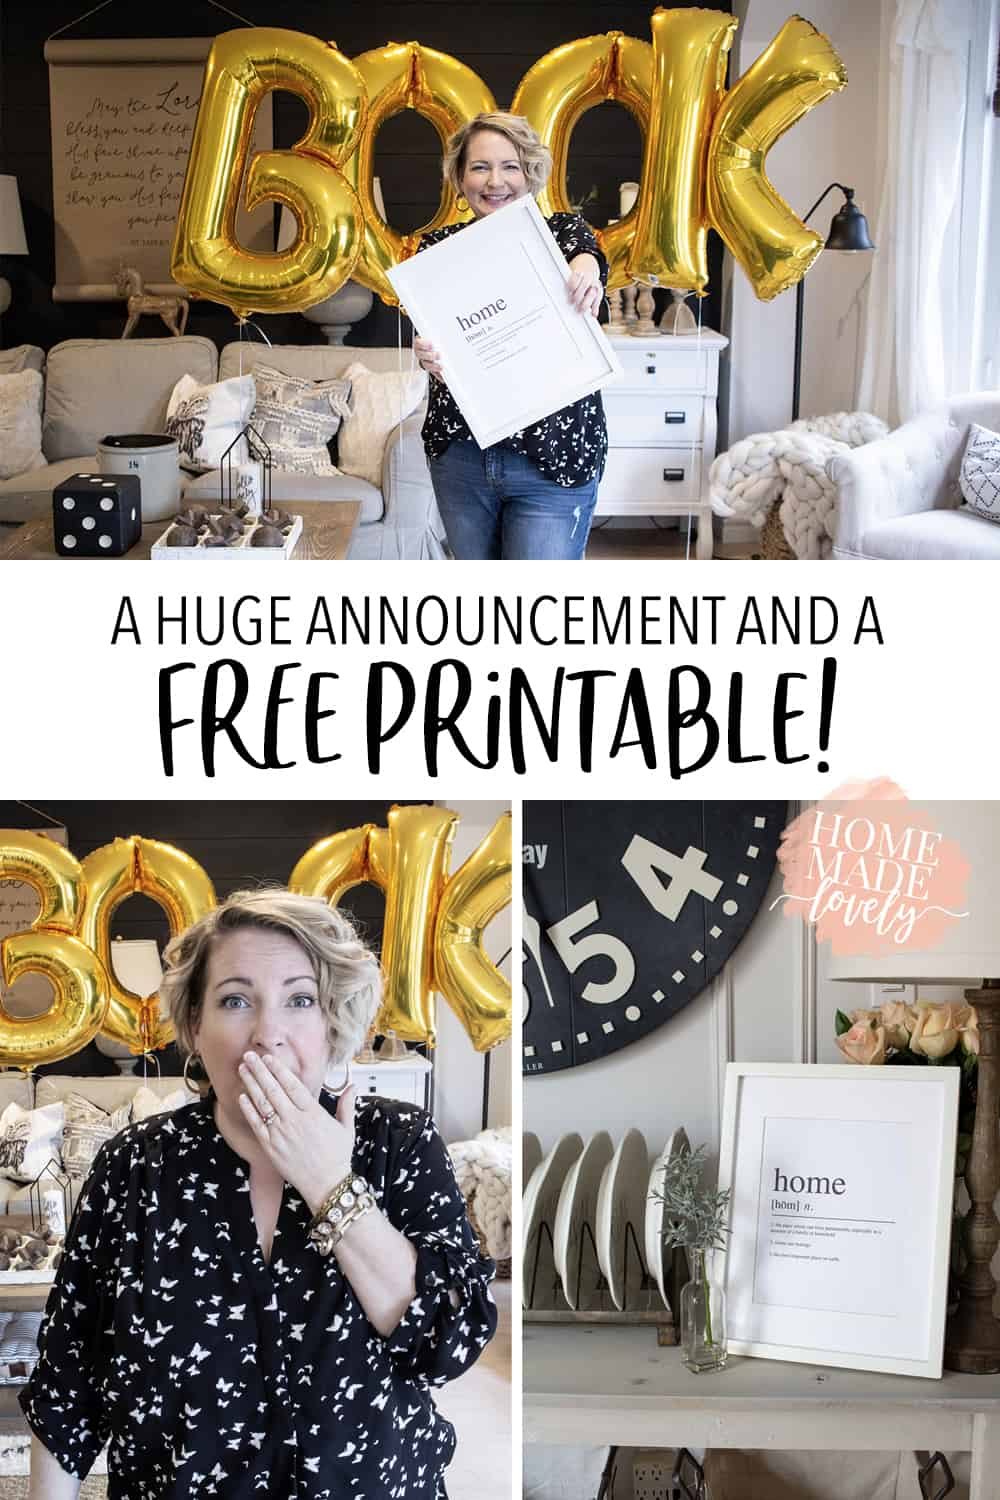 I've been keeping a secret from you...I'm writing a book! And I created a free printable for you, to celebrate! Woohoo!!!